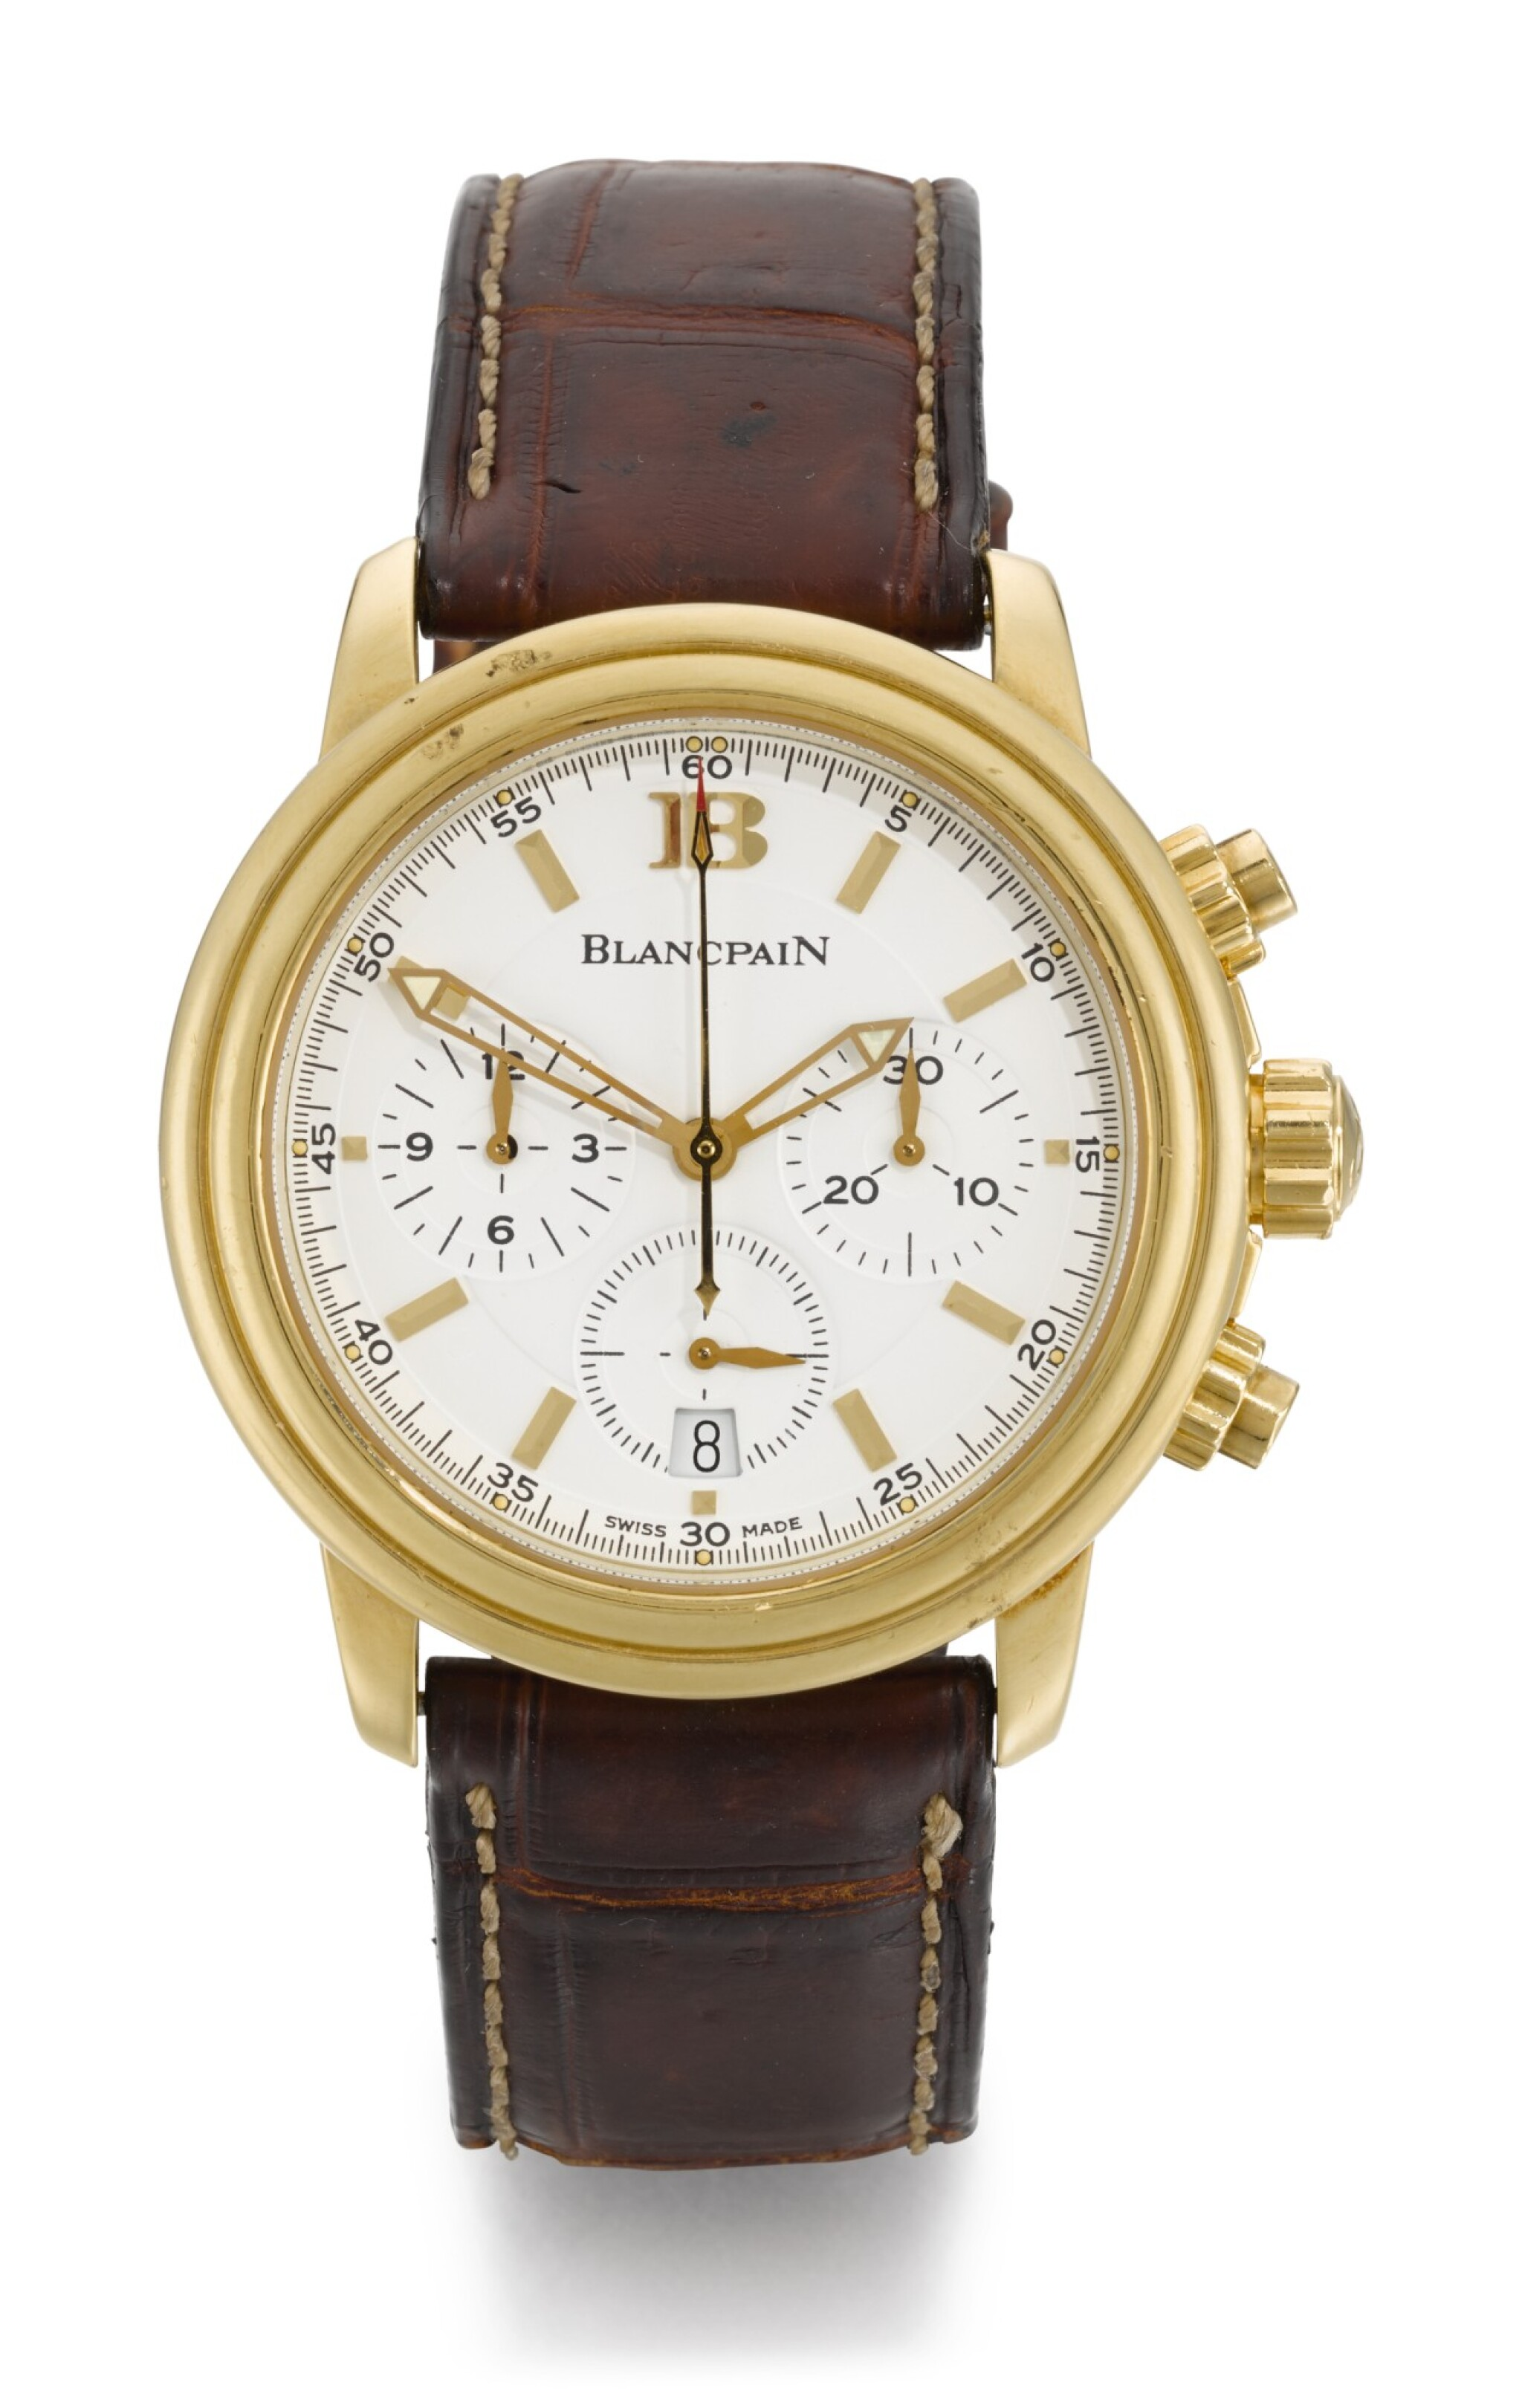 BLANCPAIN | LÉMAN CHRONO, REFERENCE 2185-1418-53, YELLOW GOLD CHRONOGRAPH WRISTWATCH WITH DATE, CIRCA 2008